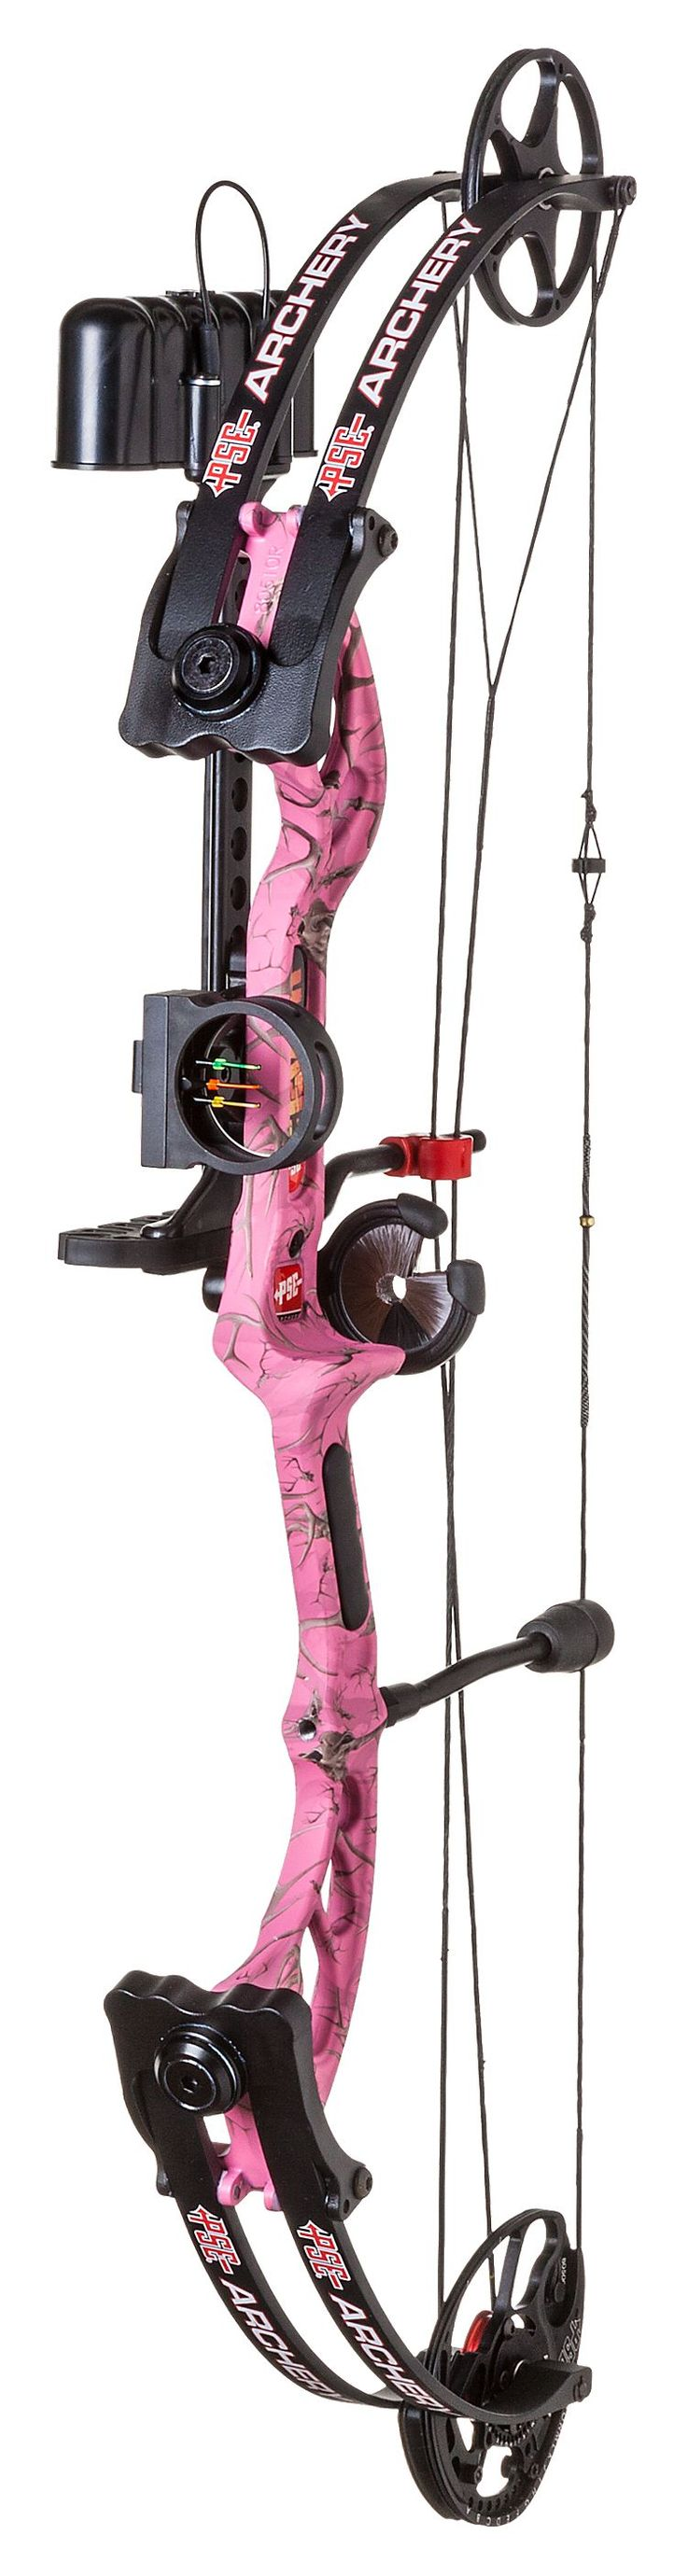 PSE Archery Fever 1 Compound Bow RTS (Ready To Shoot) Packages | Bass Pro Shops